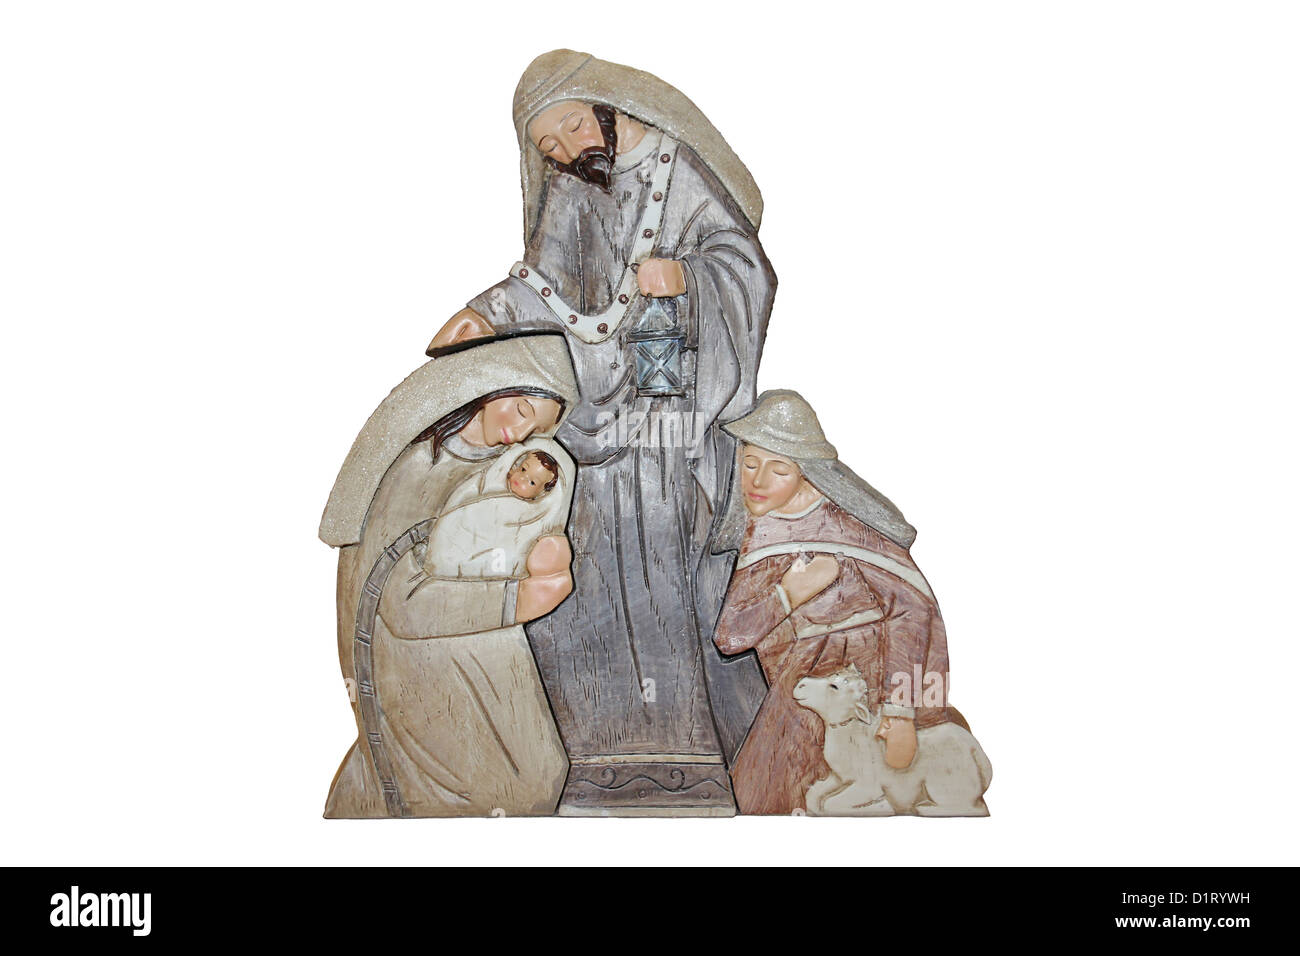 Christmas Decoration showing Mary, Baby Jesus and the Shepherds Stock Photo